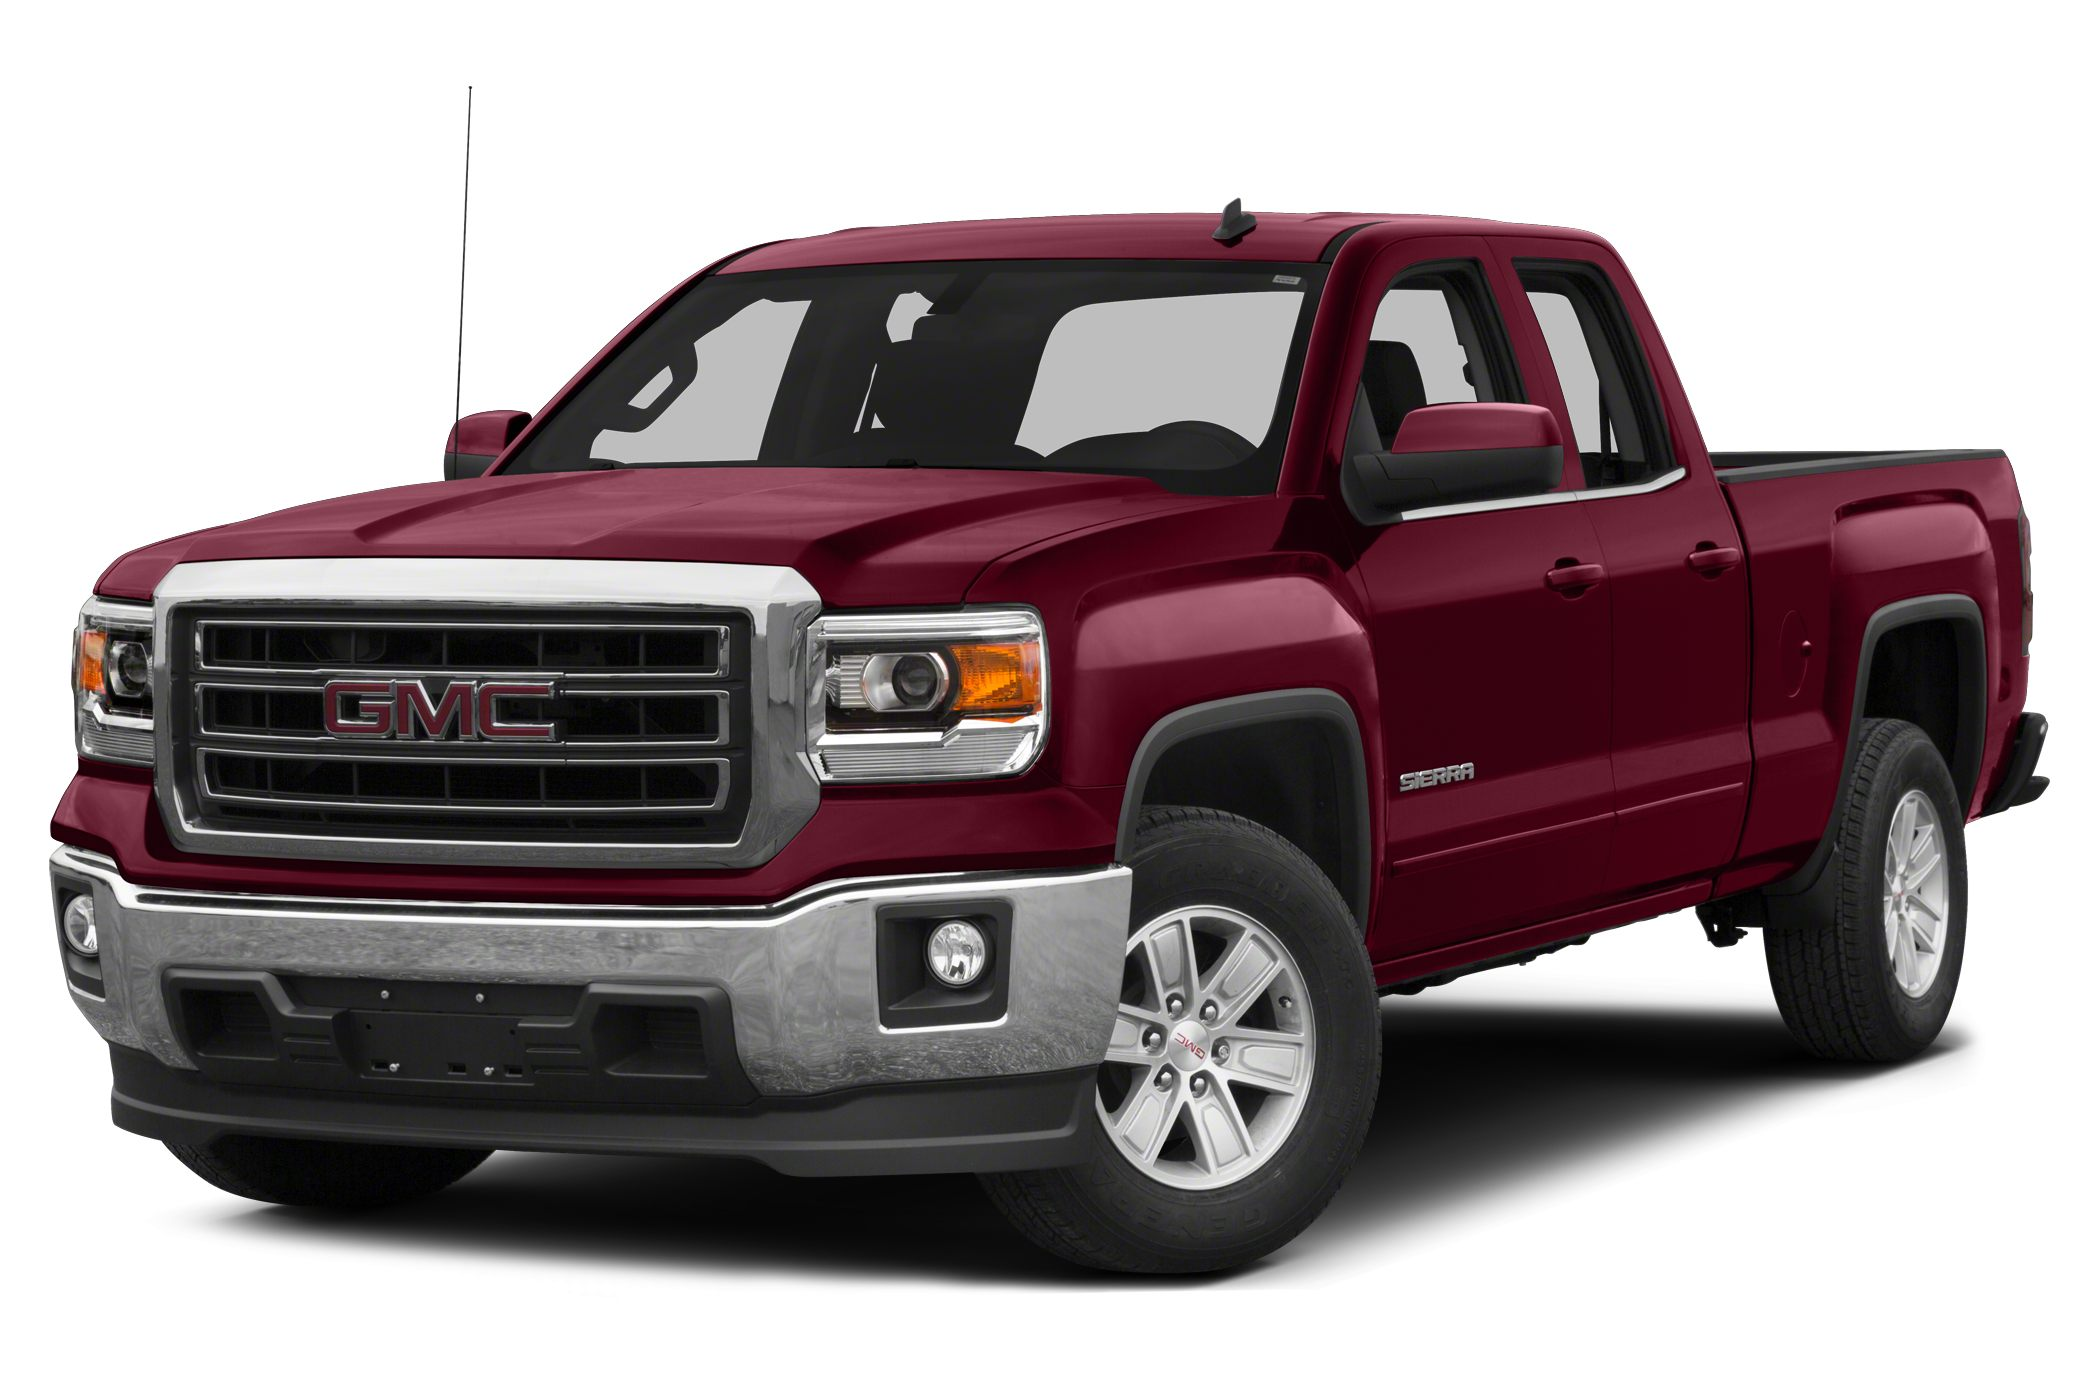 2014 GMC Sierra 1500 SLE Crew Cab Pickup for sale in Quarryville for $44,105 with 0 miles